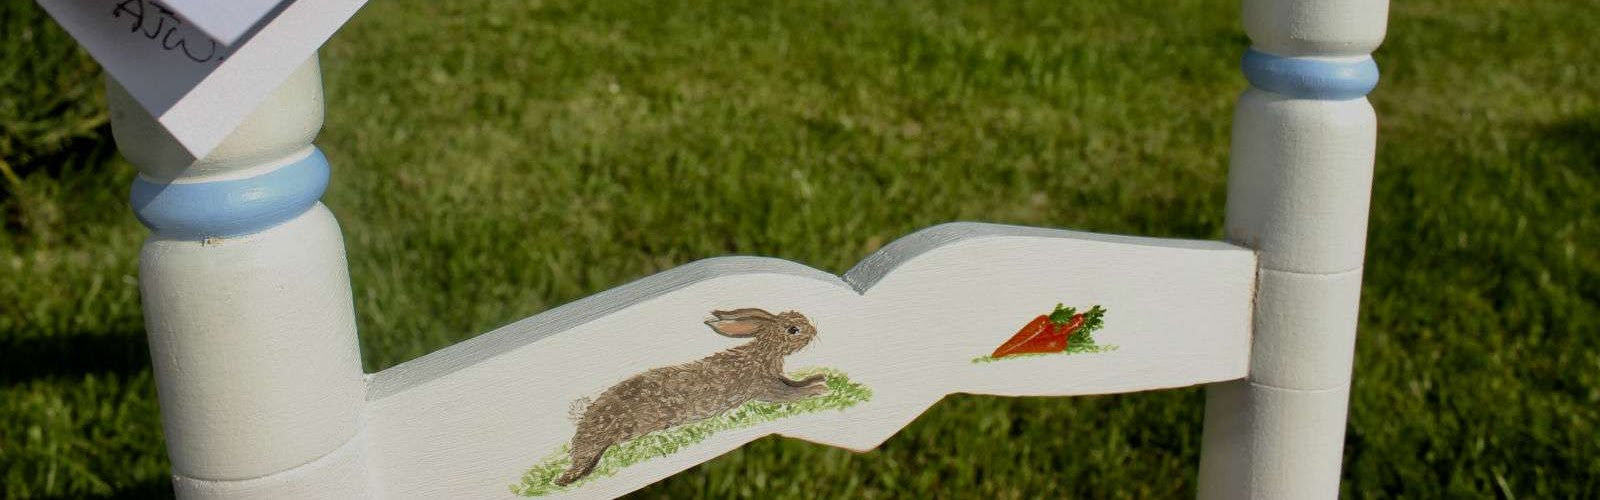 a rabbit on a children's chair